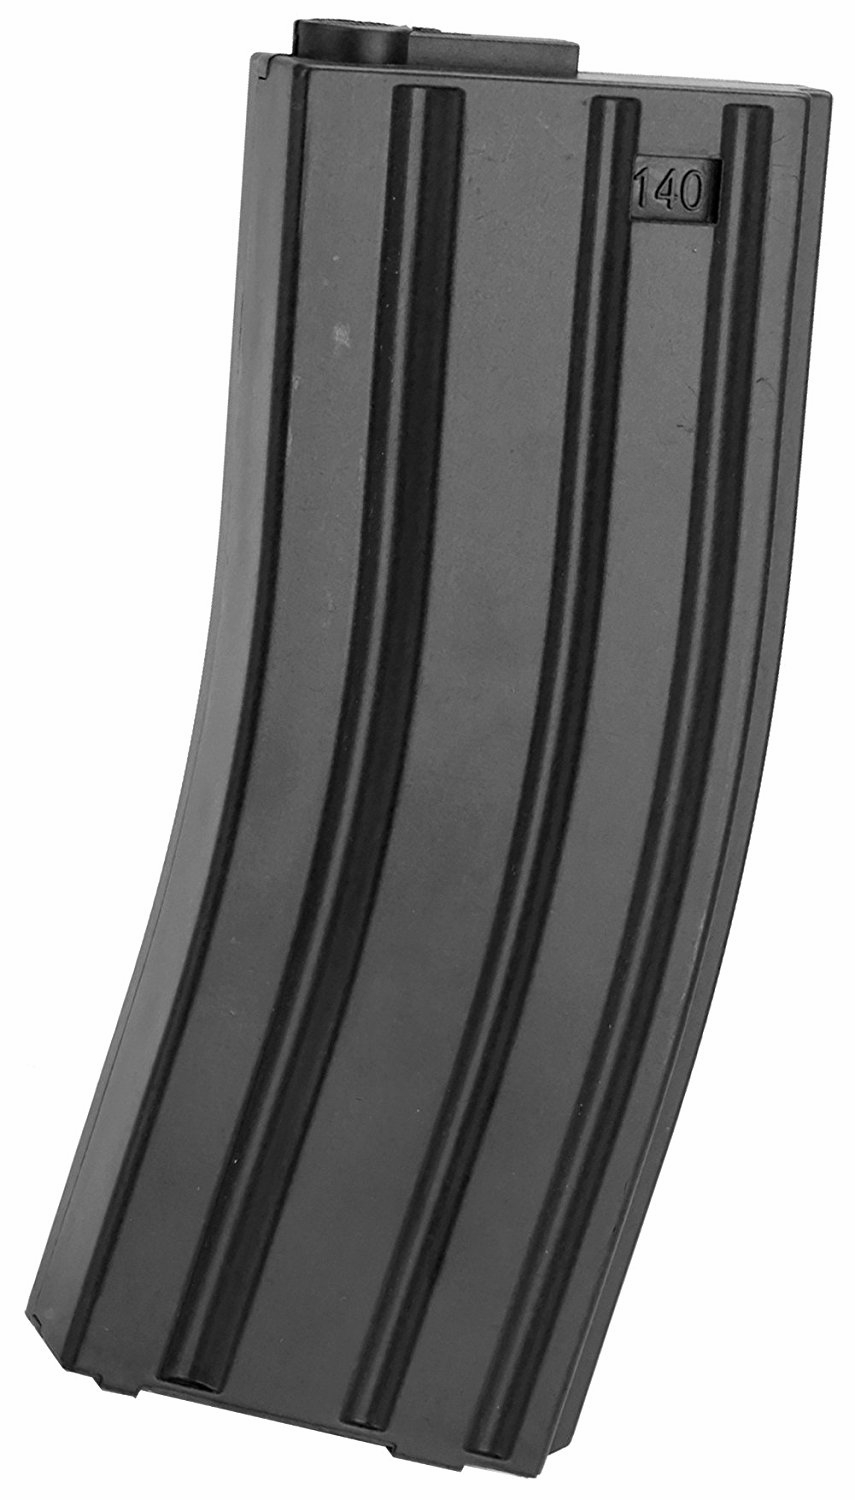 6mm ProShop 140rd. Mid-Cap Magazine